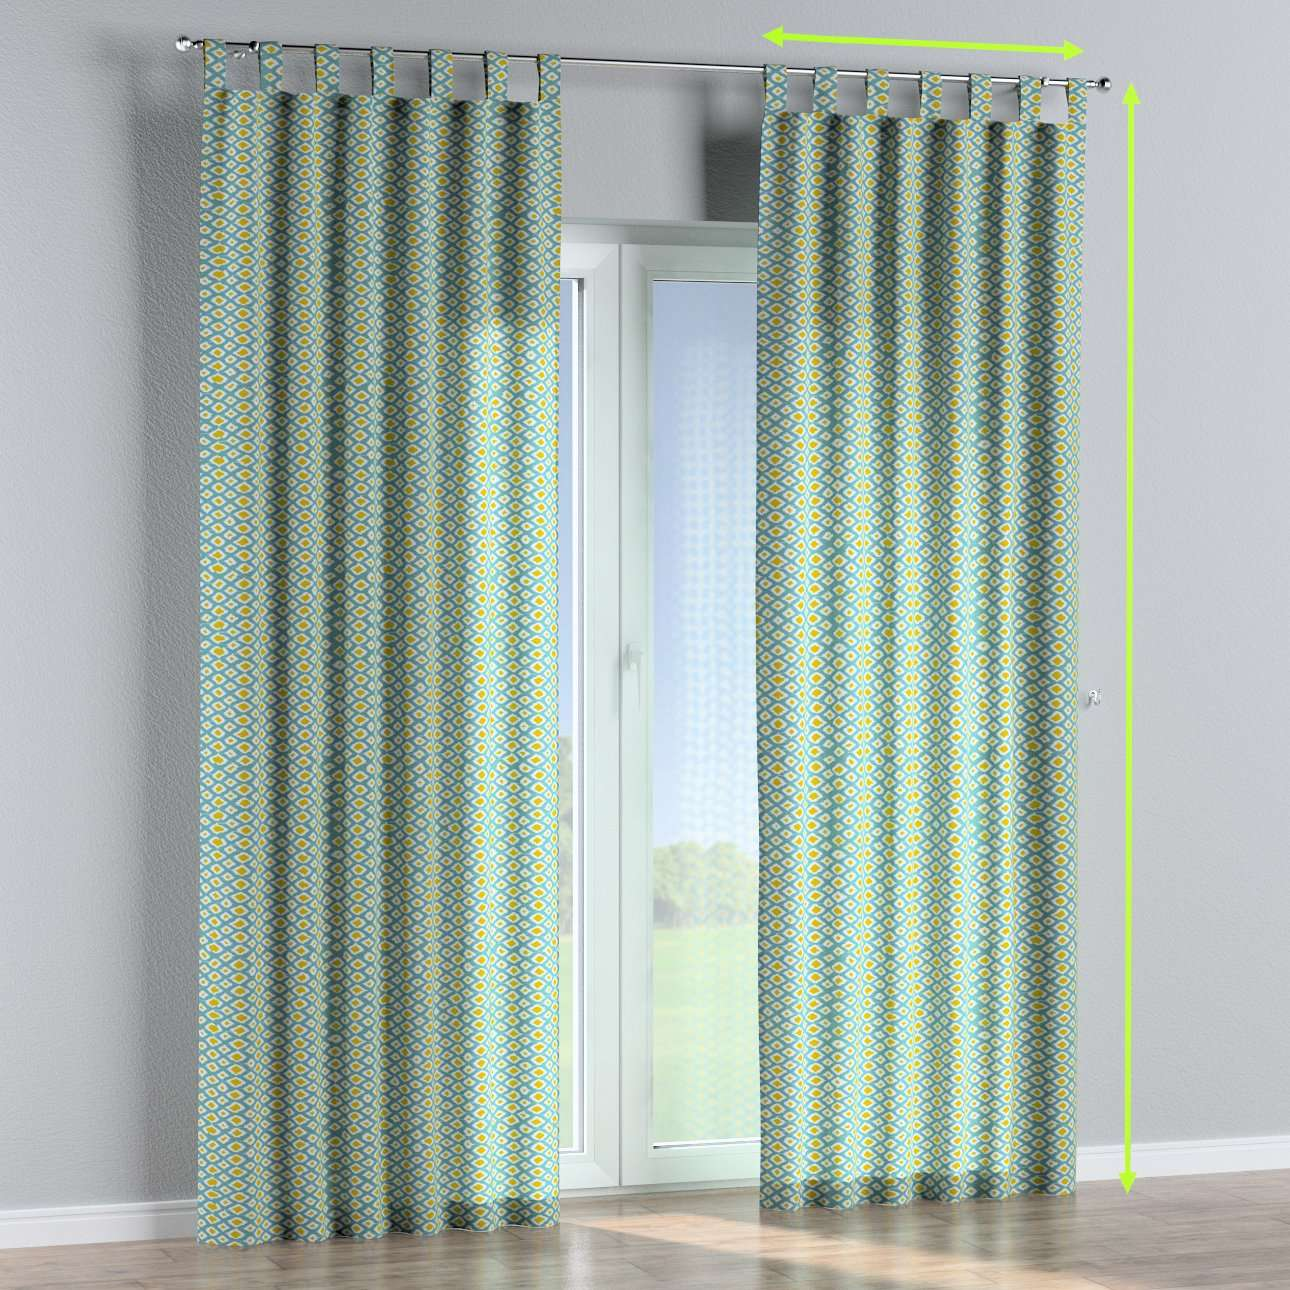 Tab top curtains in collection Comics/Geometrical, fabric: 141-20